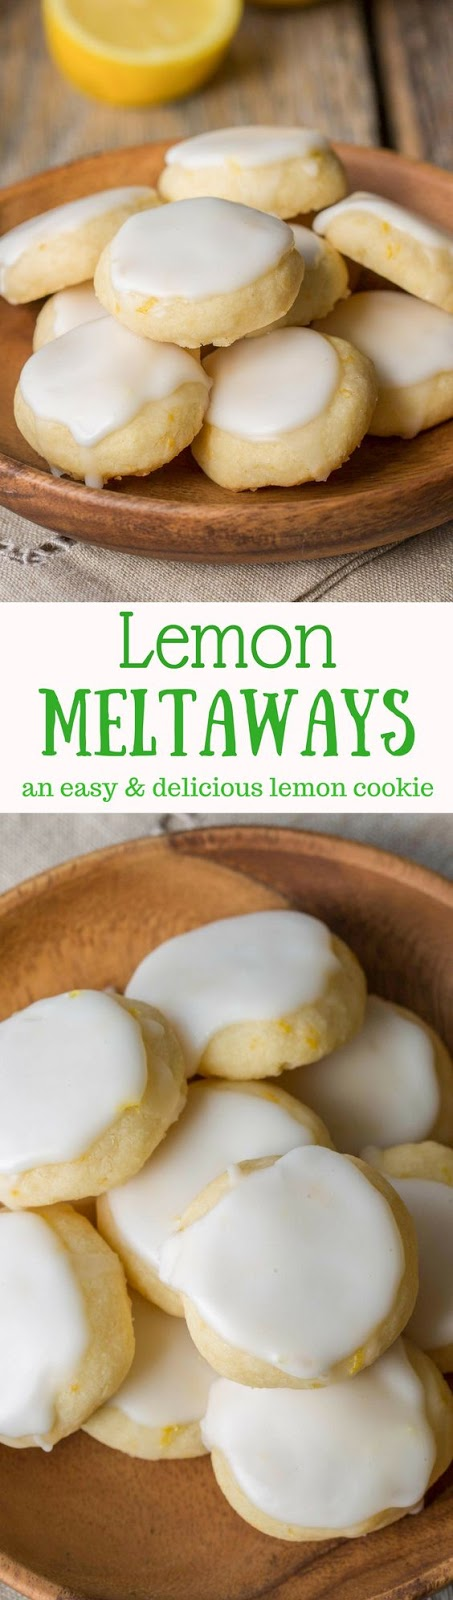 ★★★★☆ 7561 ratings | Lemon Meltaways  #HEALTHYFOOD #EASYRECIPES #DINNER #LAUCH #DELICIOUS #EASY #HOLIDAYS #RECIPE #desserts #specialdiet #worldcuisine #cake #appetizers #healthyrecipes #drinks #cookingmethod #italianrecipes #meat #veganrecipes #cookies #pasta #fruit #salad #soupappetizers #nonalcoholicdrinks #mealplanning #vegetables #soup #pastry #chocolate #dairy #alcoholicdrinks #bulgursalad #baking #snacks #beefrecipes #meatappetizers #mexicanrecipes #bread #asianrecipes #seafoodappetizers #muffins #breakfastandbrunch #condiments #cupcakes #cheese #chickenrecipes #pie #coffee #nobakedesserts #healthysnacks #seafood #grain #lunchesdinners #mexican #quickbread #liquor